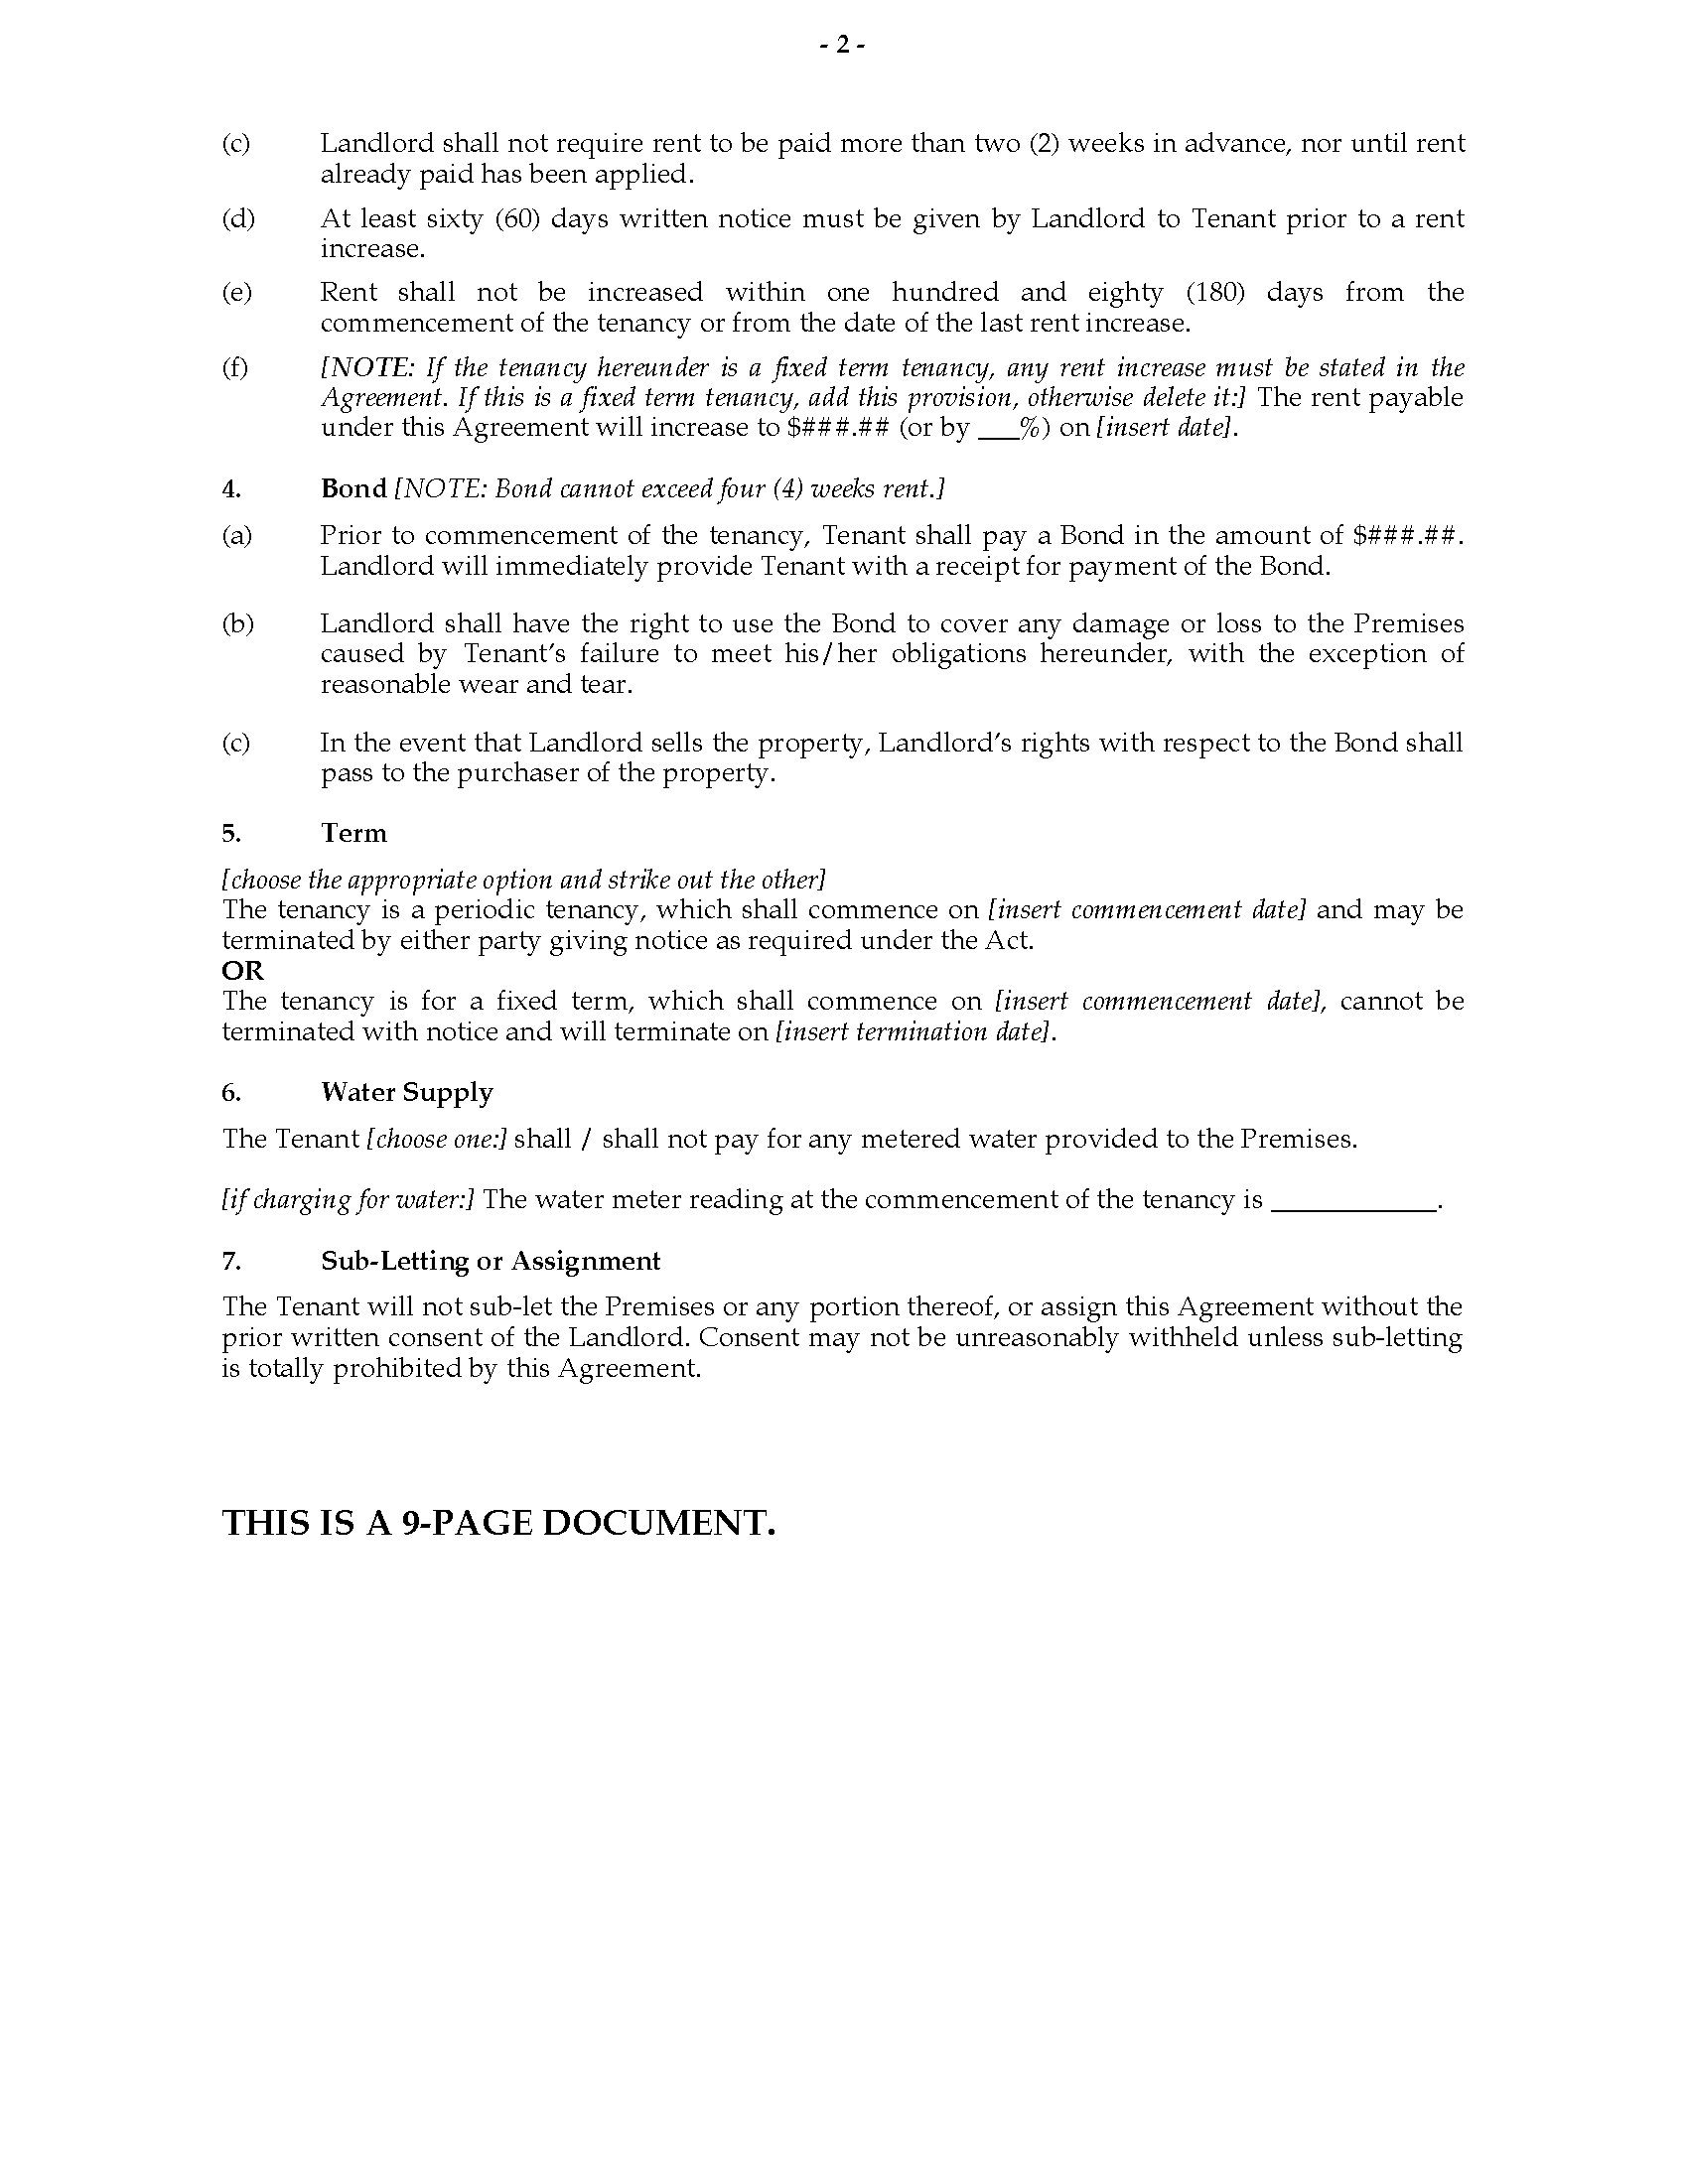 residential tenancy agreement legal forms and picture of residential tenancy agreement picture of residential tenancy agreement